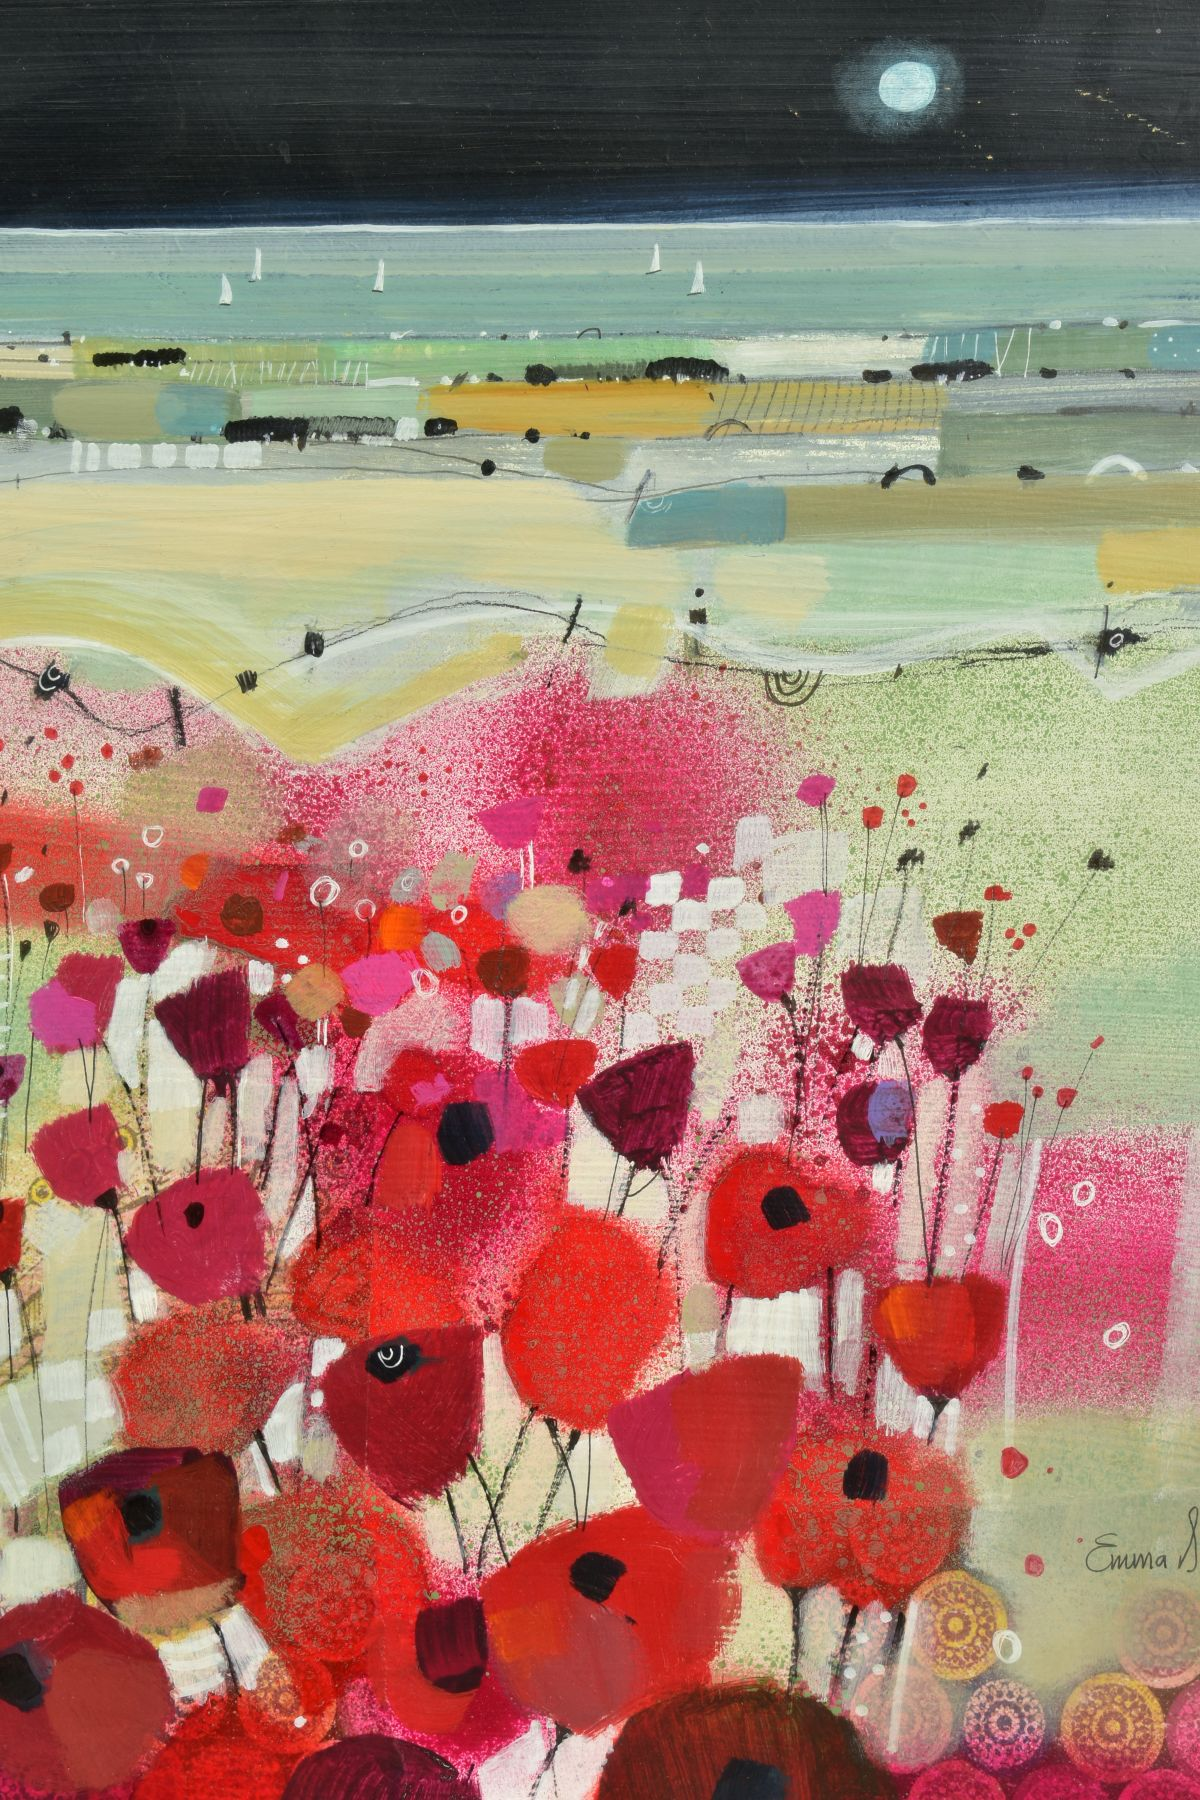 EMMA S. DAVIS (SCOTTISH 1975), 'East Coast Sail', a field of wild flowers, sailing boats beyond, - Image 2 of 7